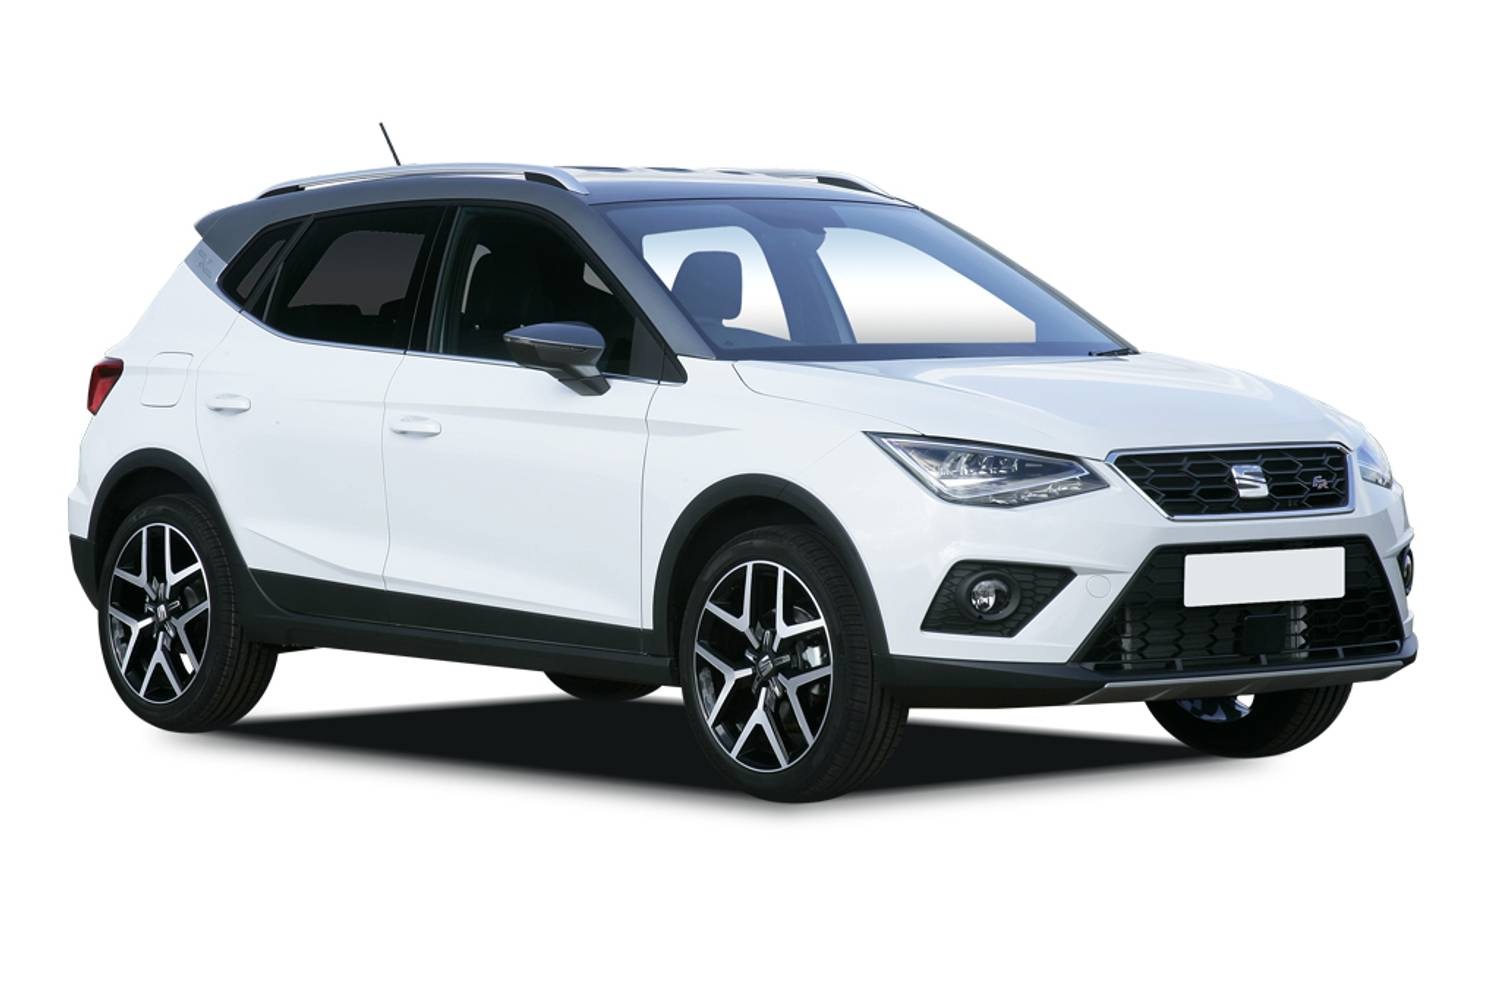 New SEAT Arona Hatchback 1.0 TSI (115 PS) Xcellence Lux 5 ...